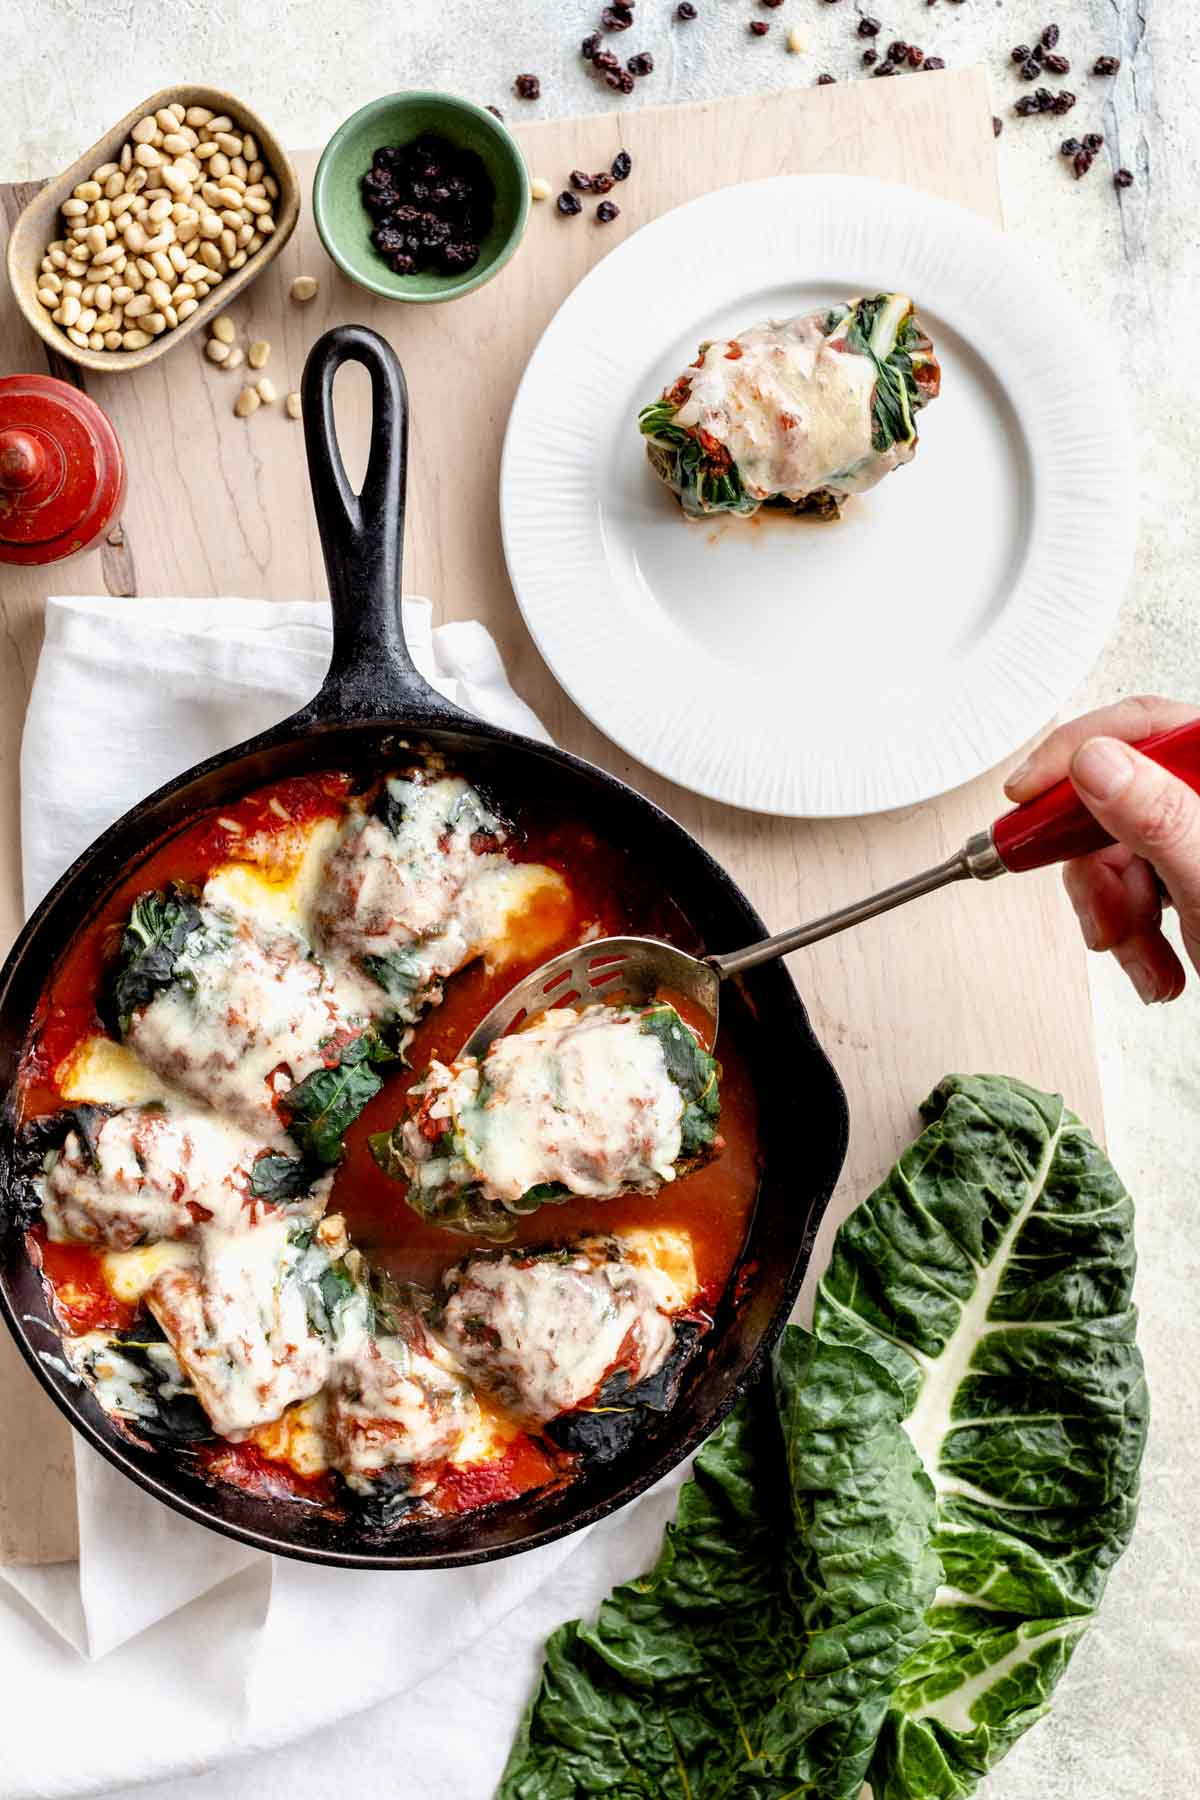 swiss chard rolls in a skillet, one is on a plate and another is being lifted up on a slotted spoon